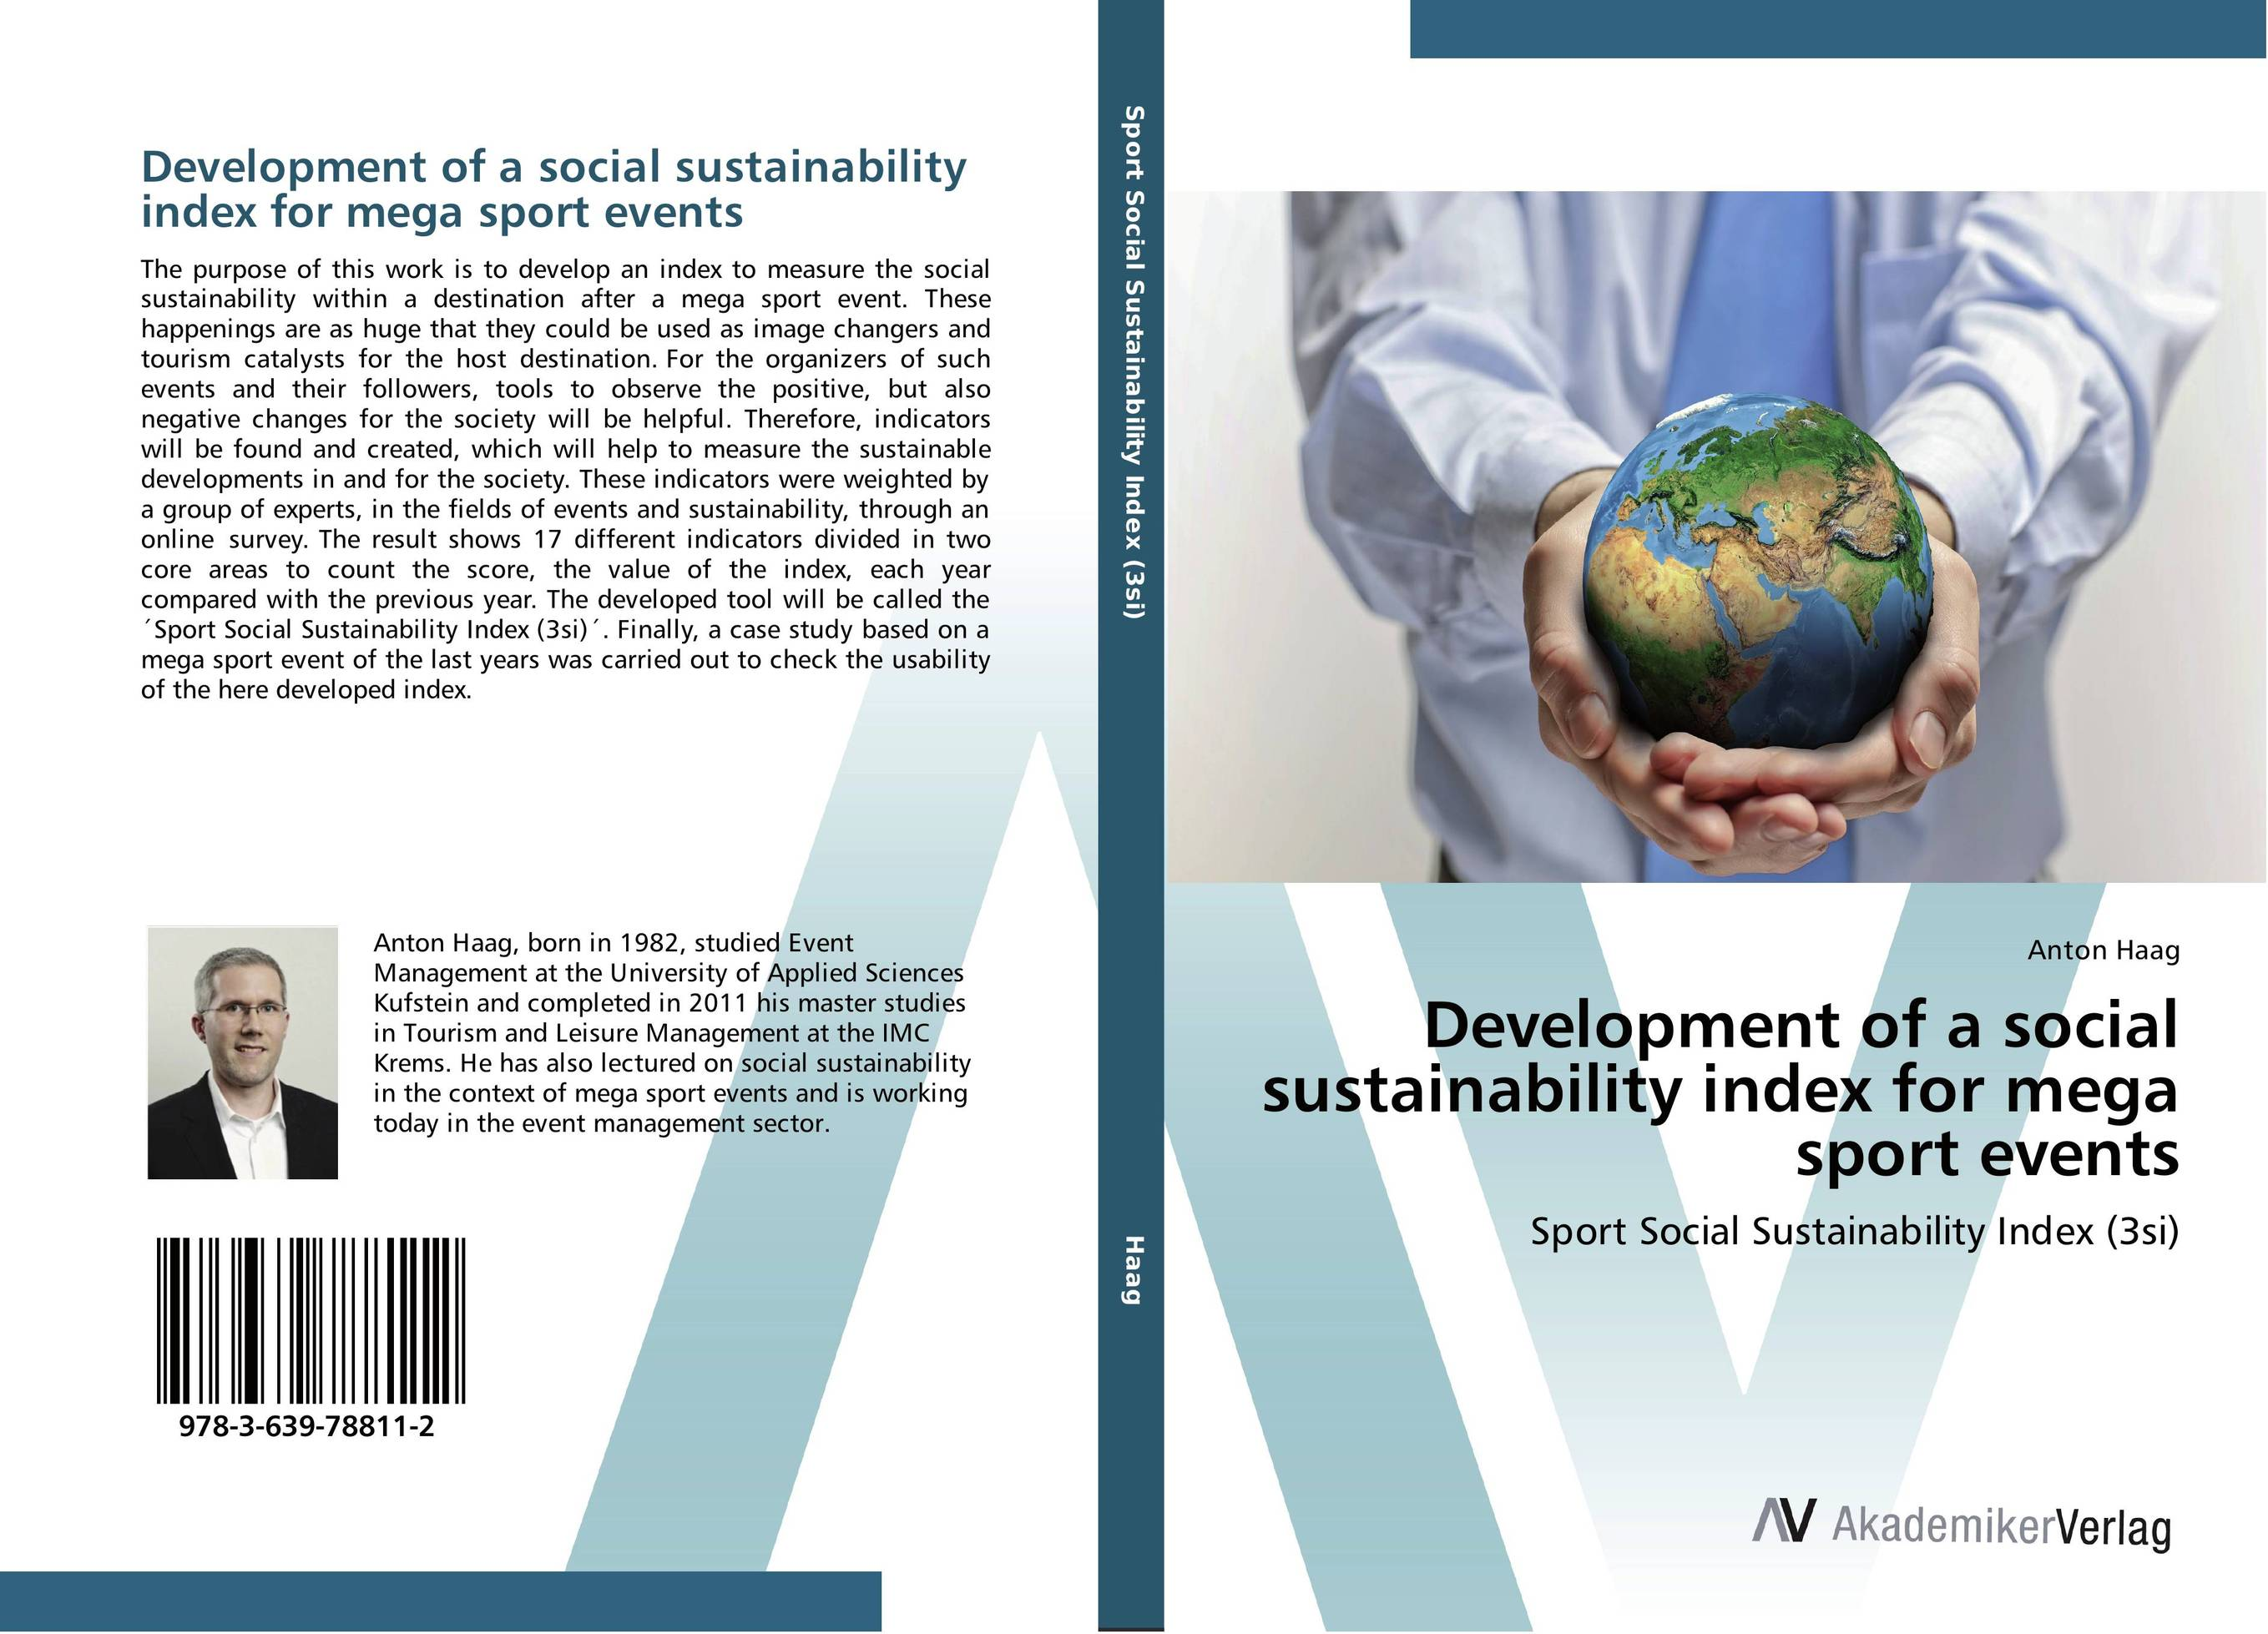 Development of a social sustainability index for mega sport events evaluation of the impact of a mega sporting event